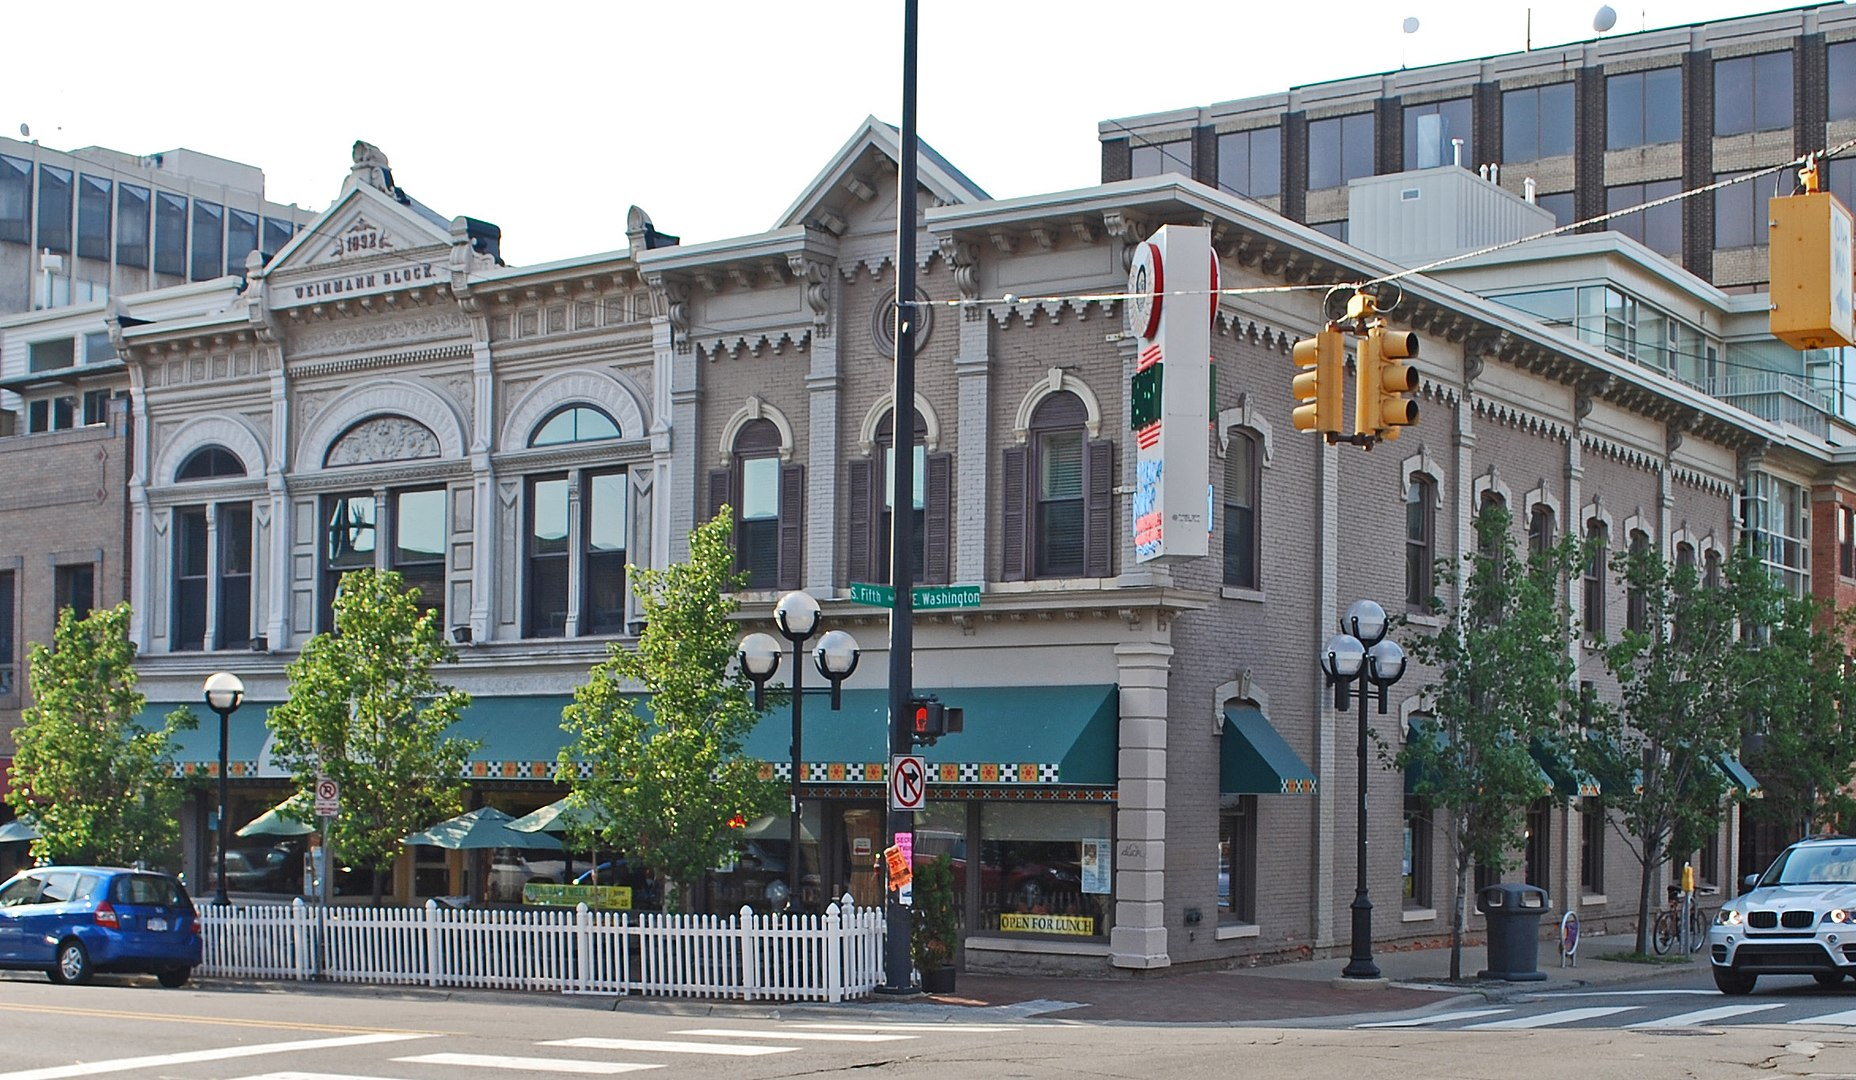 2010 Photo of the Weinmann Block in Ann Arbor, with the Blue Nile restaurant serving as its most prominent occupant.